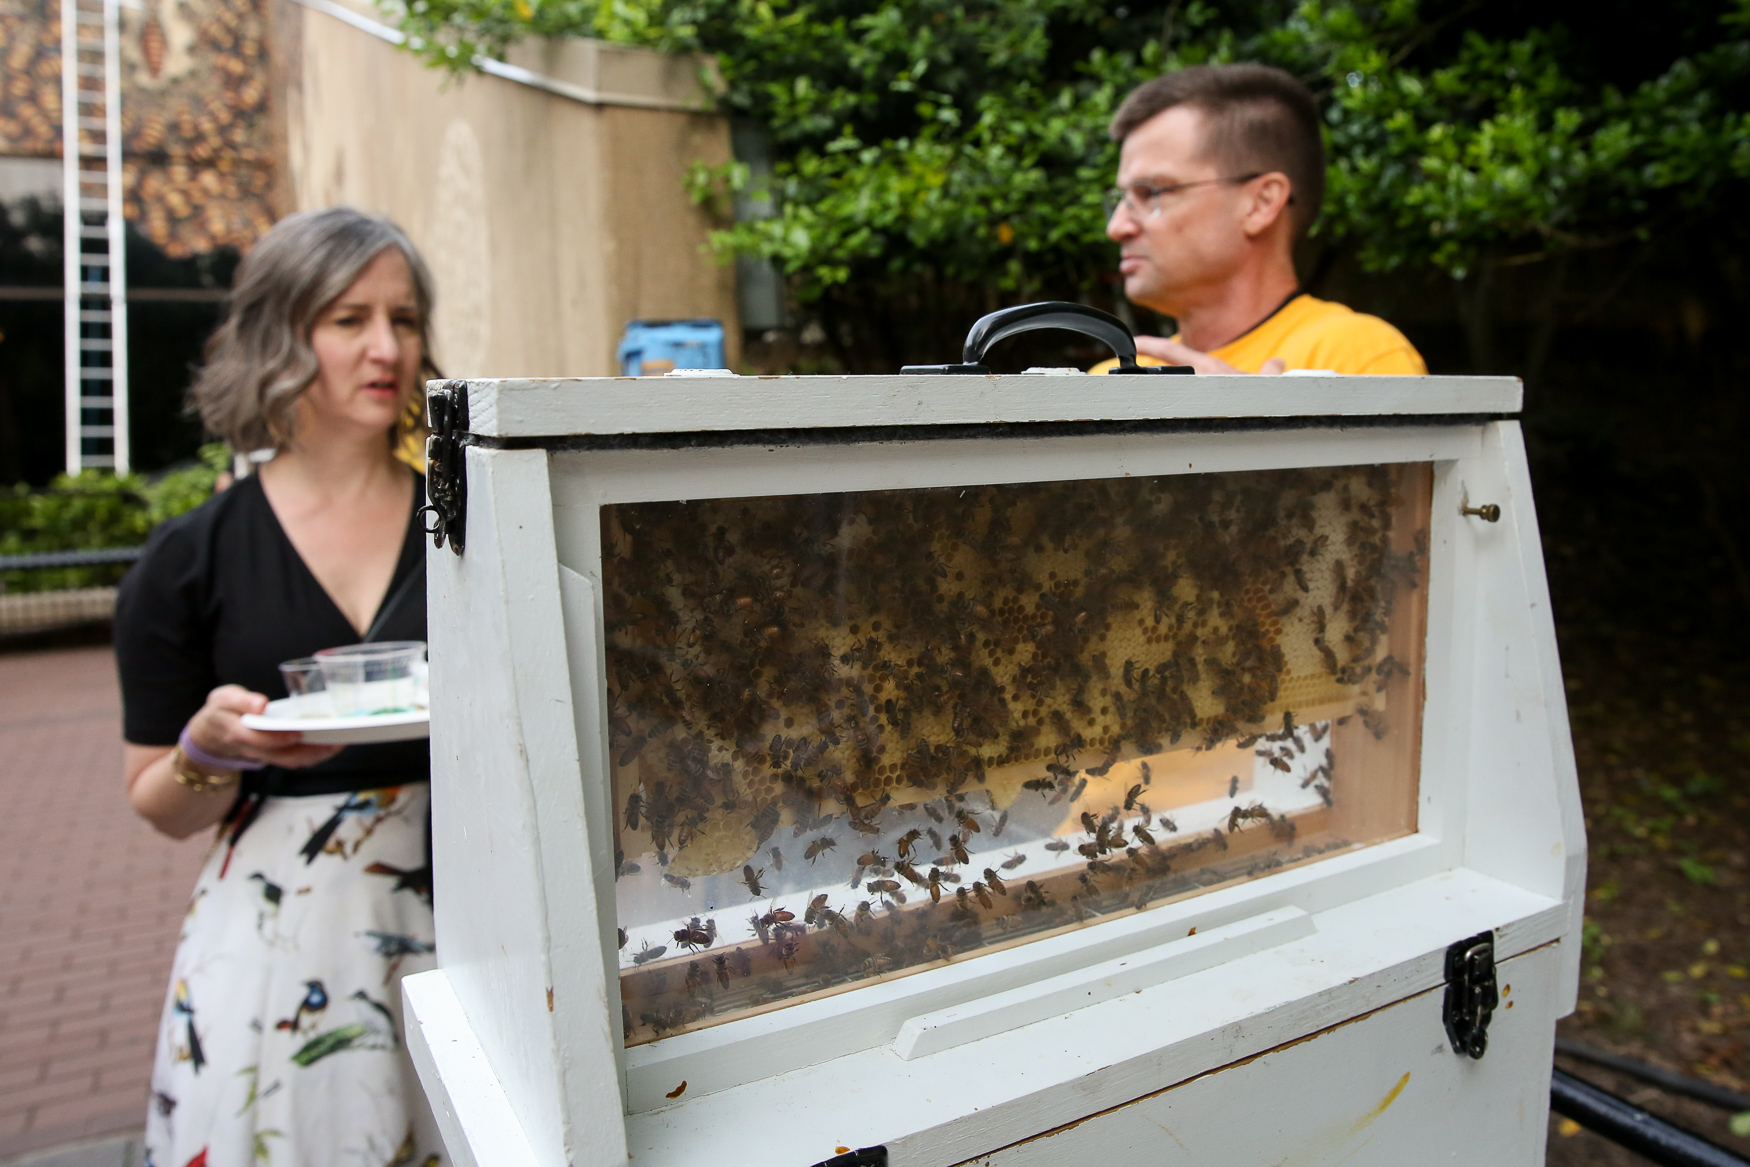 One display had live bees and local honey to show the importance of the insect.{&nbsp;} (Amanda Andrade-Rhoades/DC Refined)<p></p>